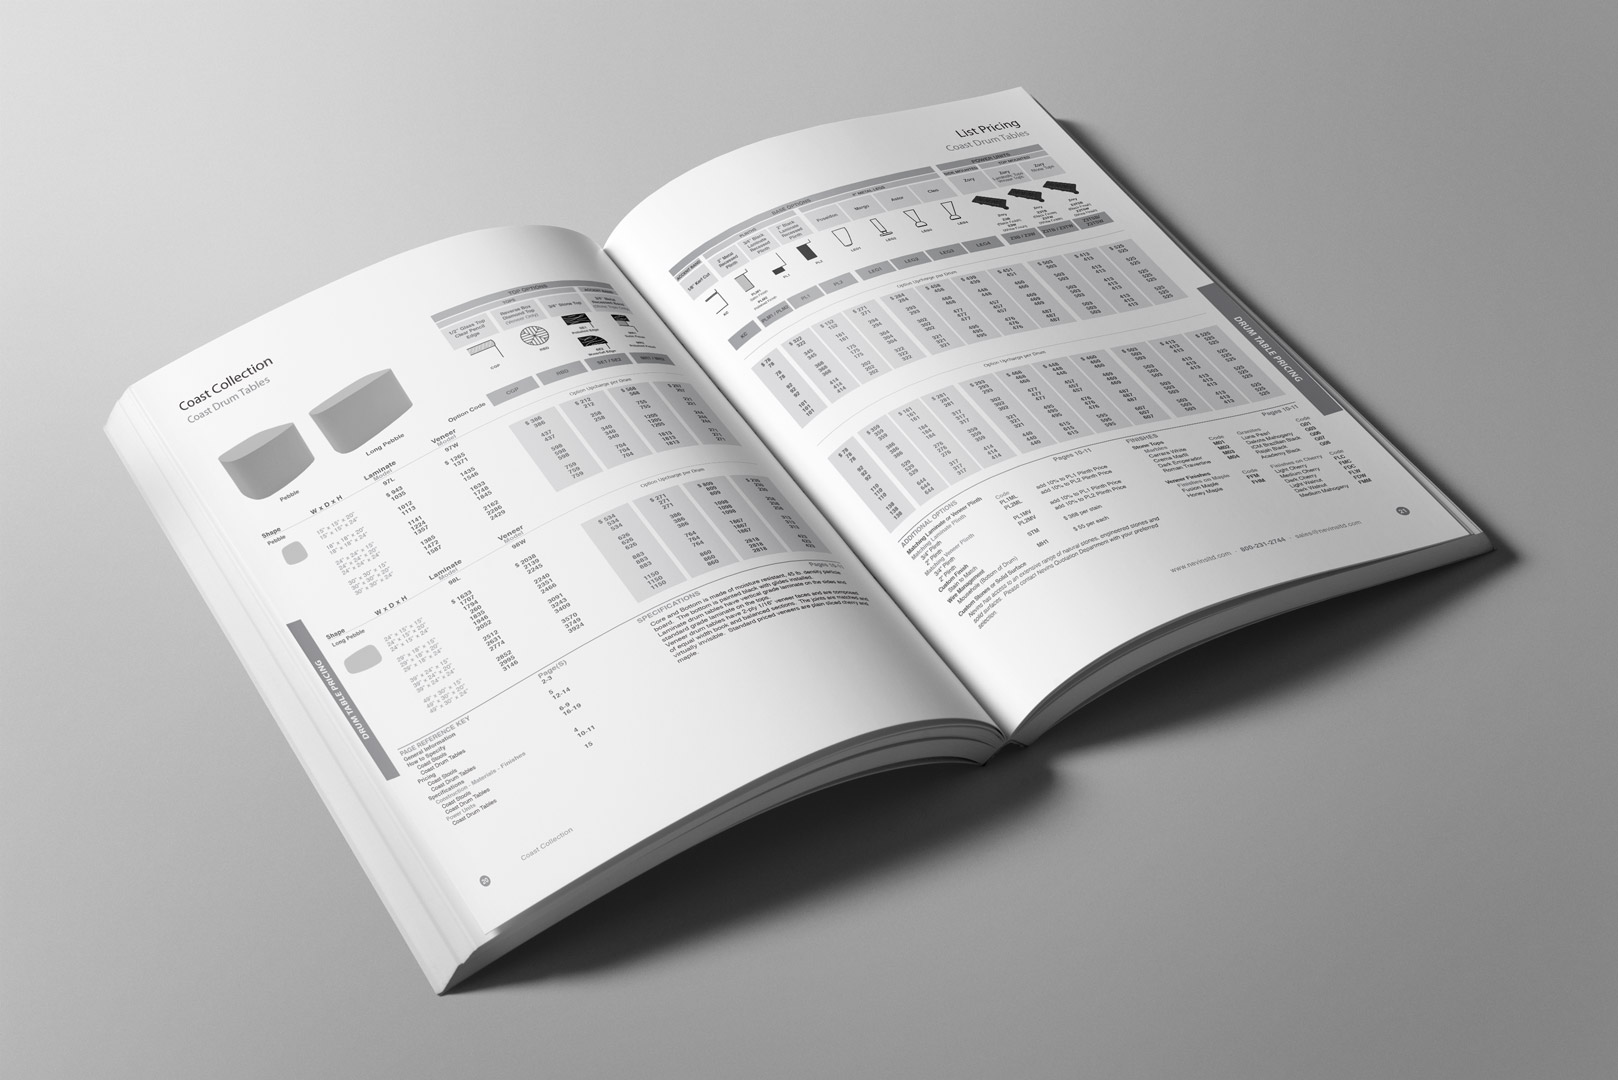 furniture pricebook inside pages design